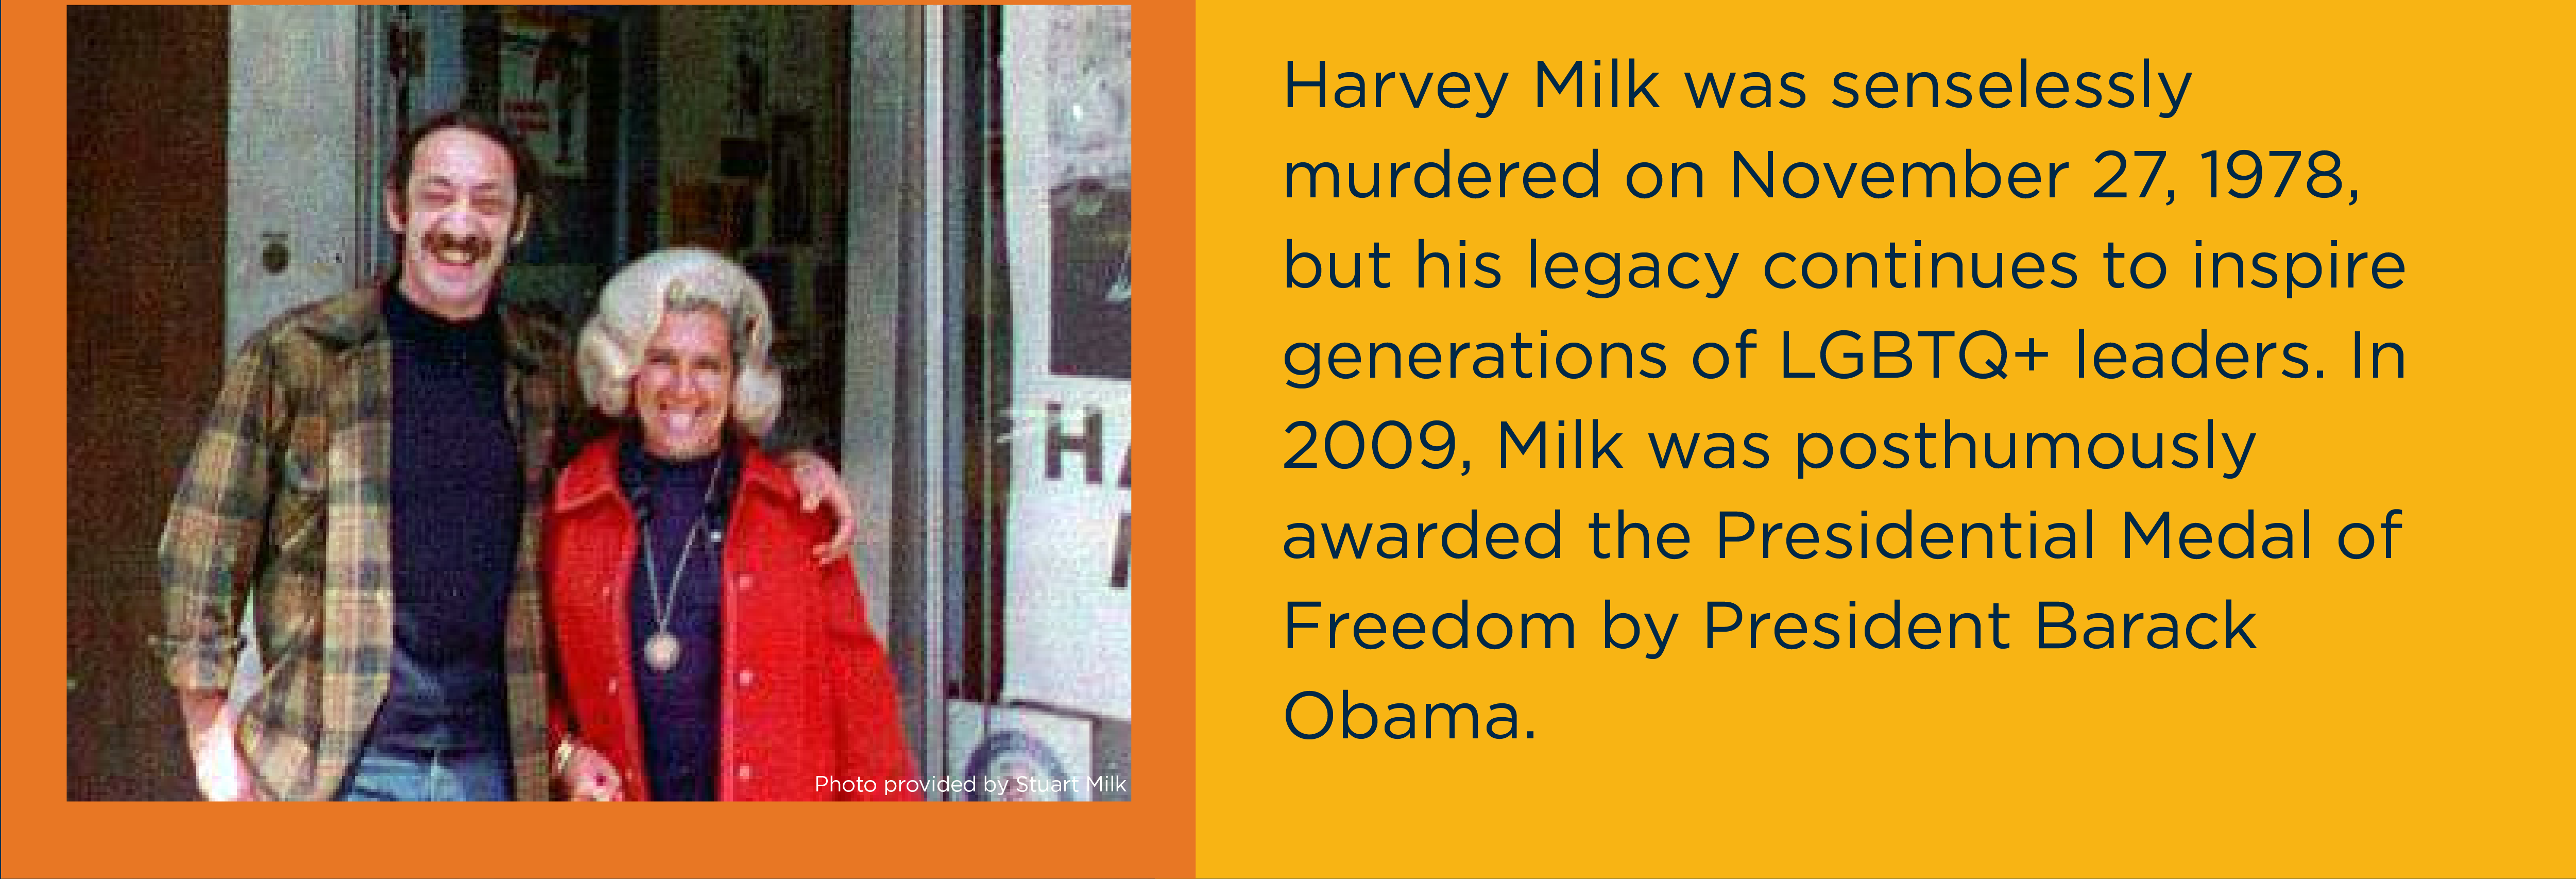 Harvey Milk was senselessly murdered on November 27, 1978, but his legacy continues to inspire generations of LGBTQ+ leaders. In 2009, Milk was posthumously awarded the Presidential Medal of Freedom by President Barack Obama.